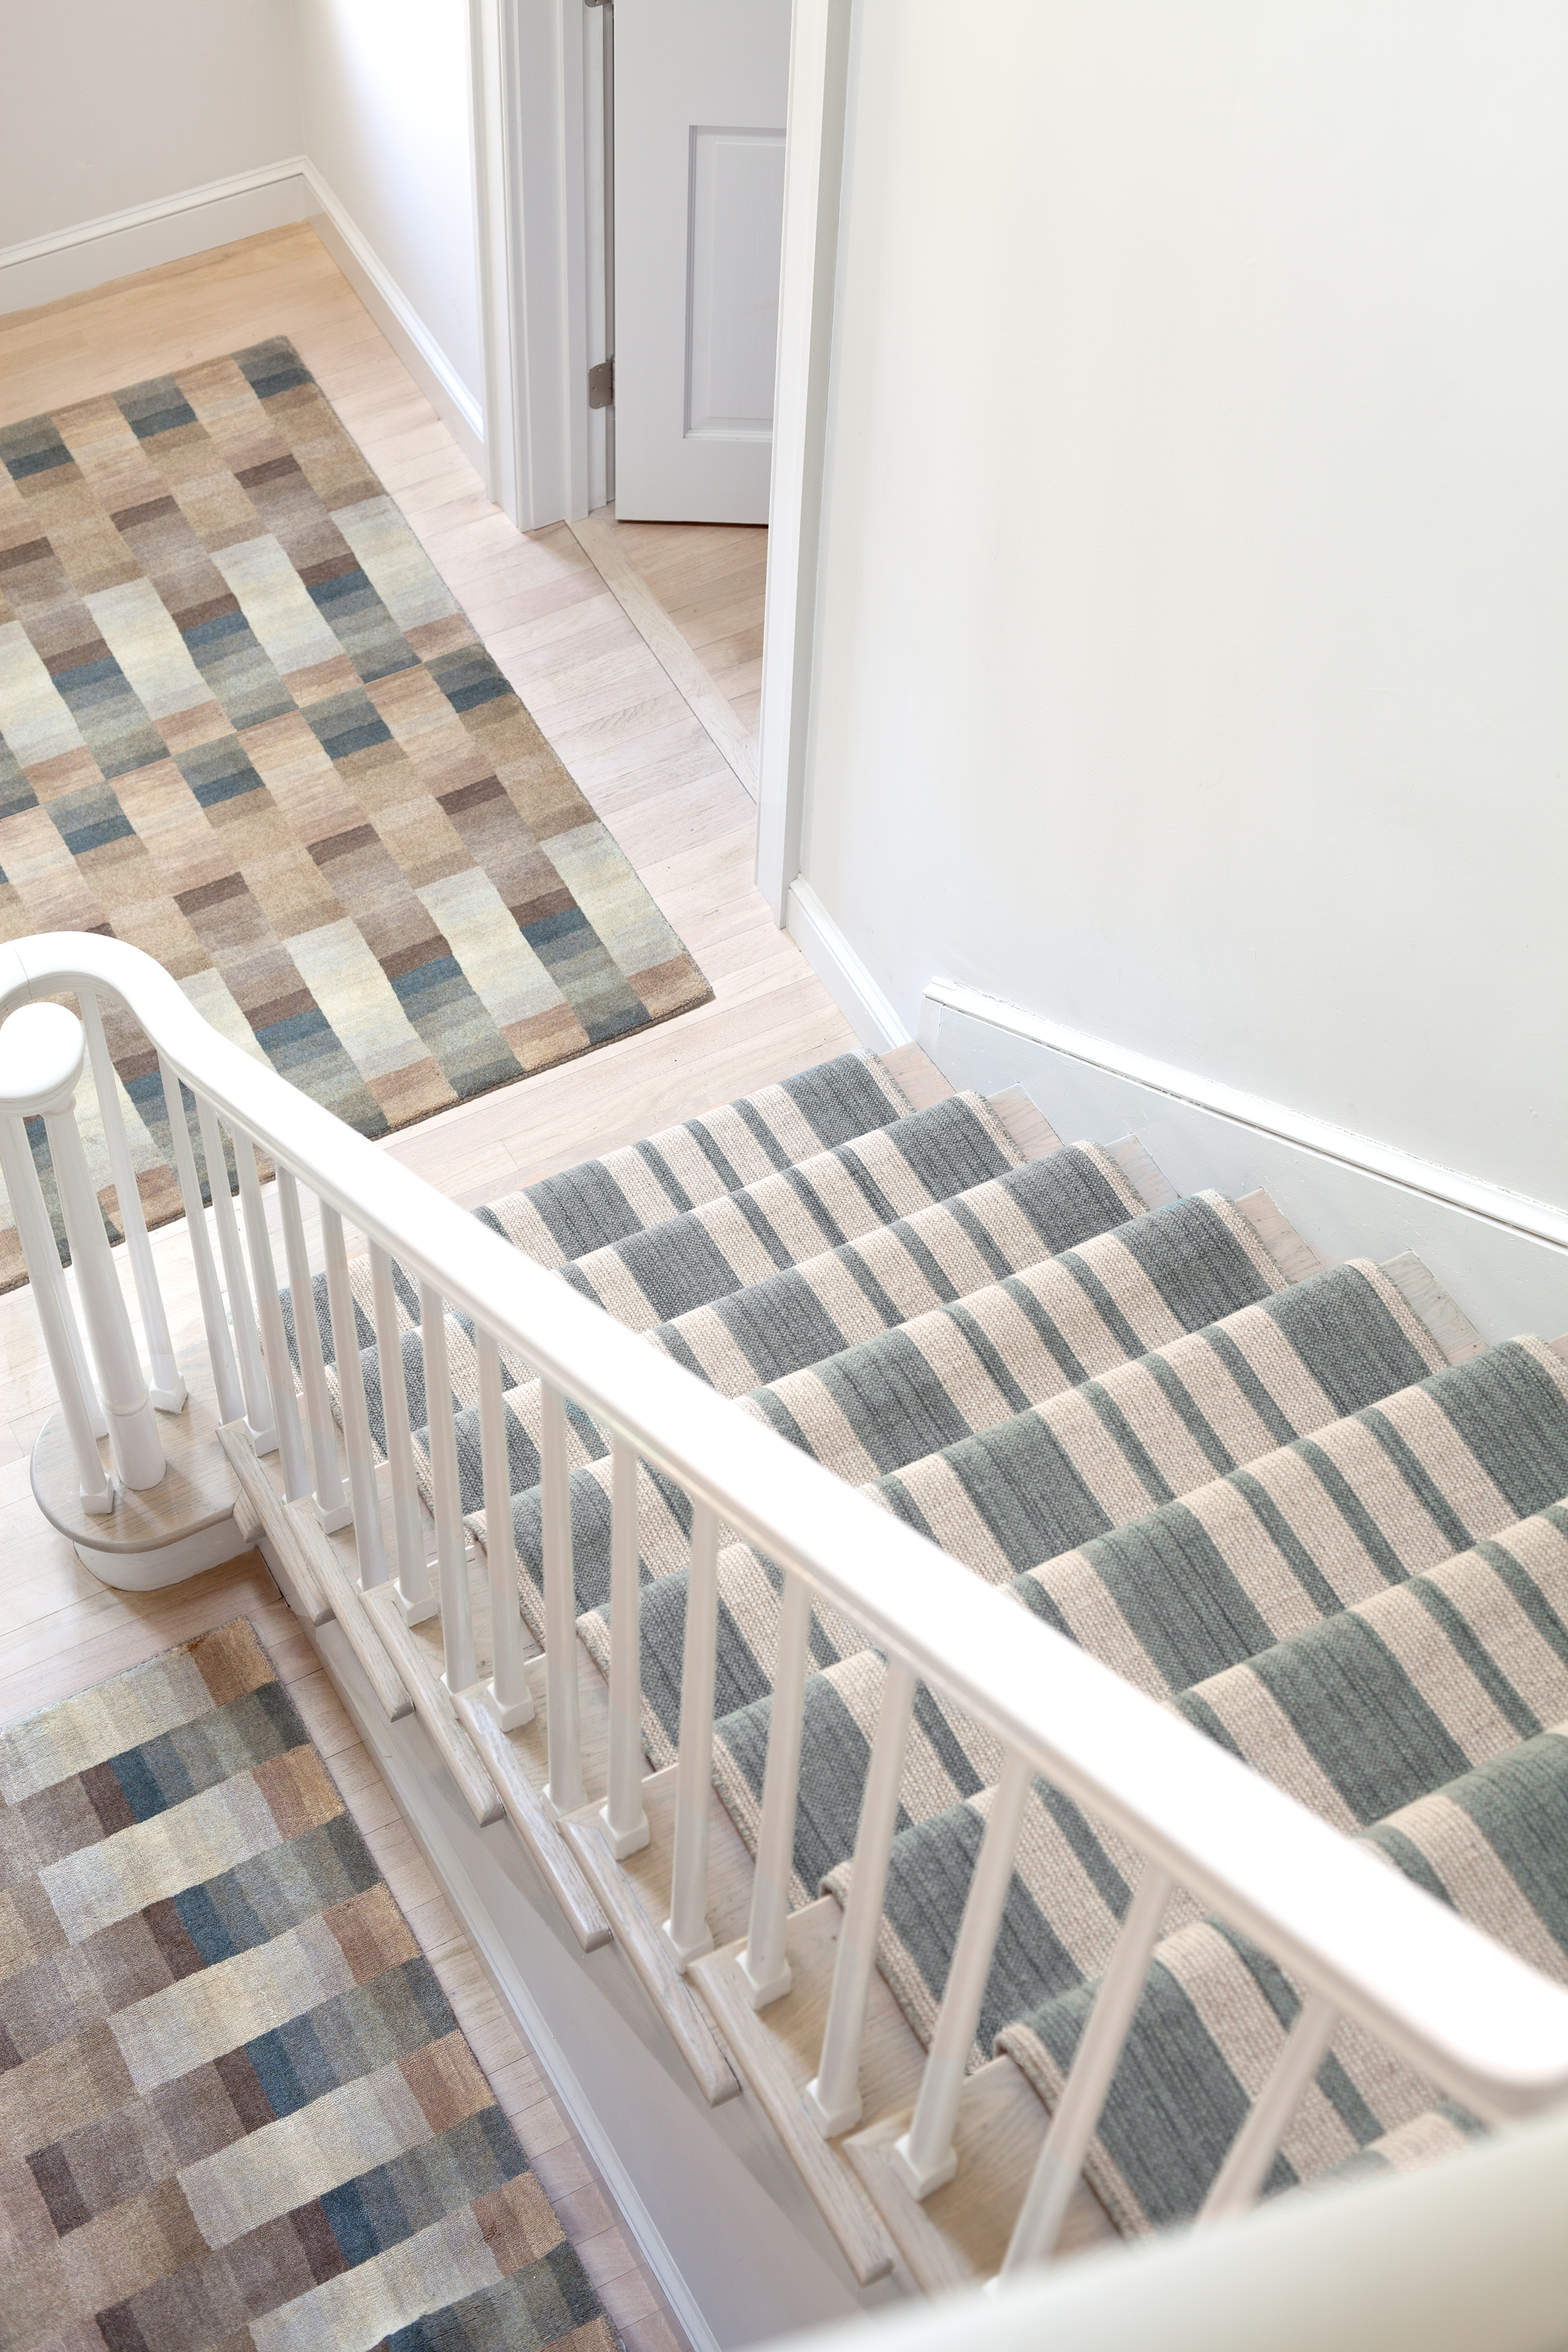 How To Choose A Runner Rug For A Stair Installation In Rugs For Staircases (#16 of 20)